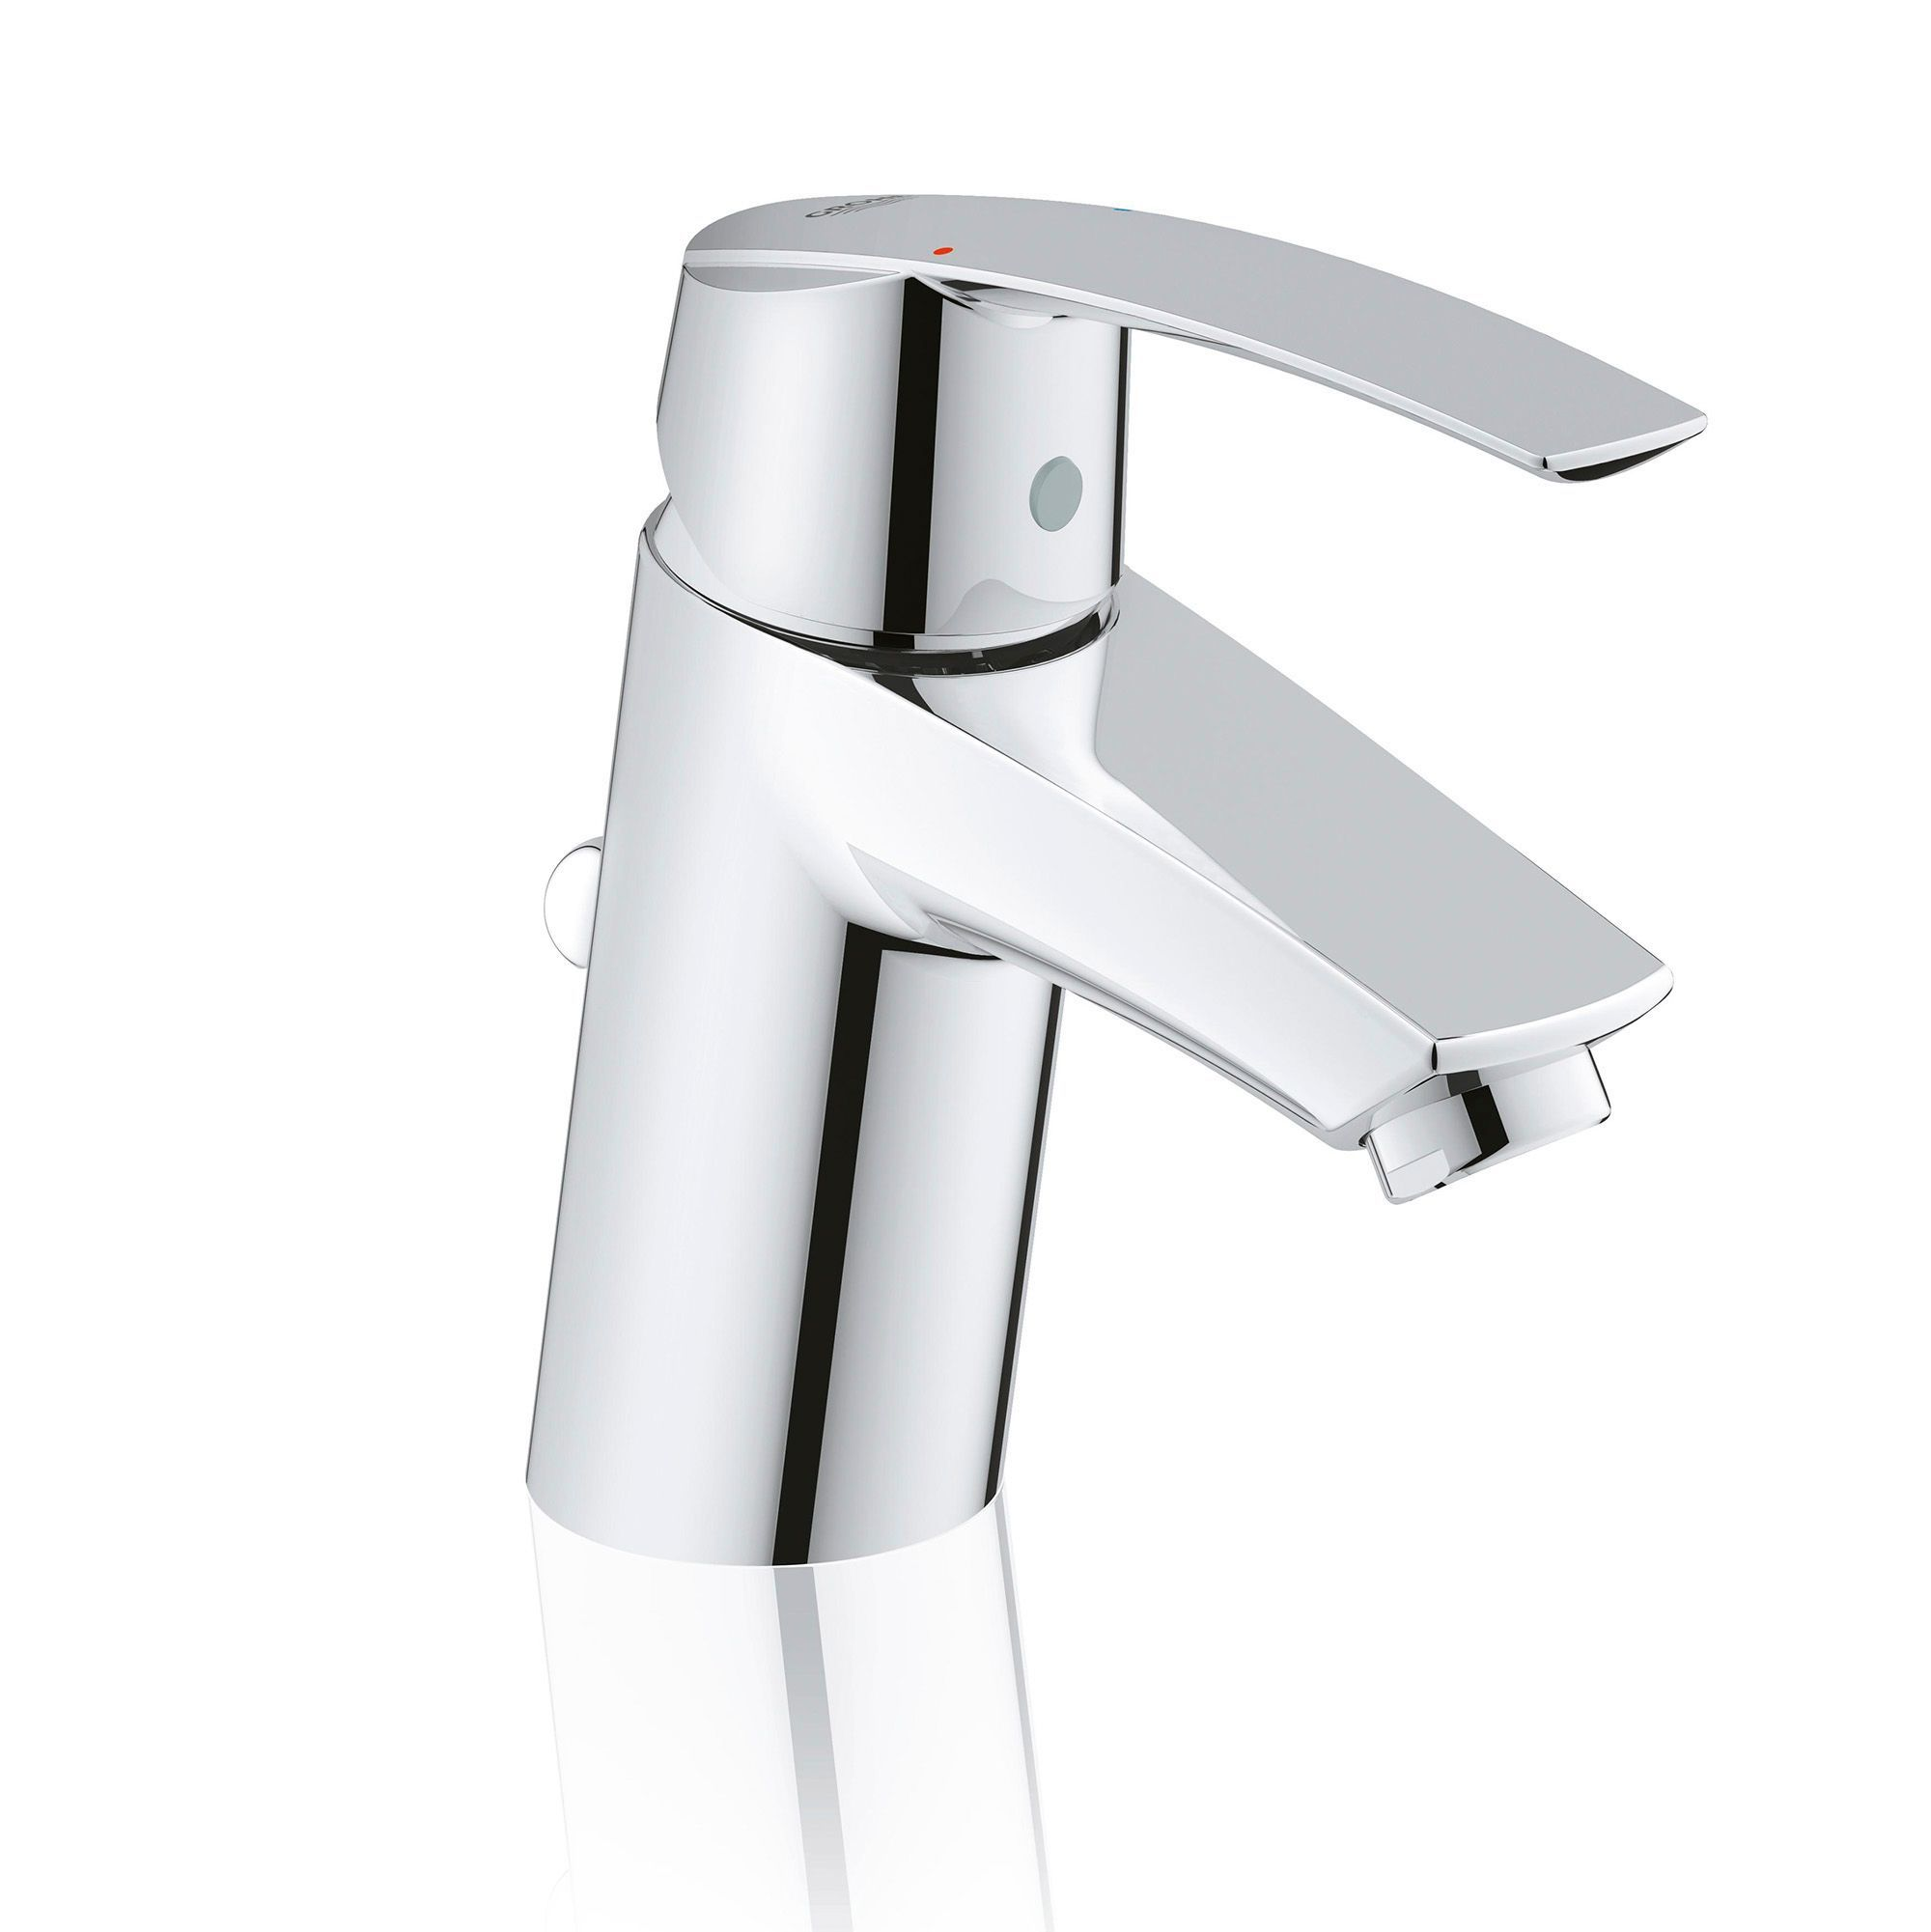 Grohe Start 1 Lever Basin Mixer Tap | Basin mixer, Mixer taps and Basin